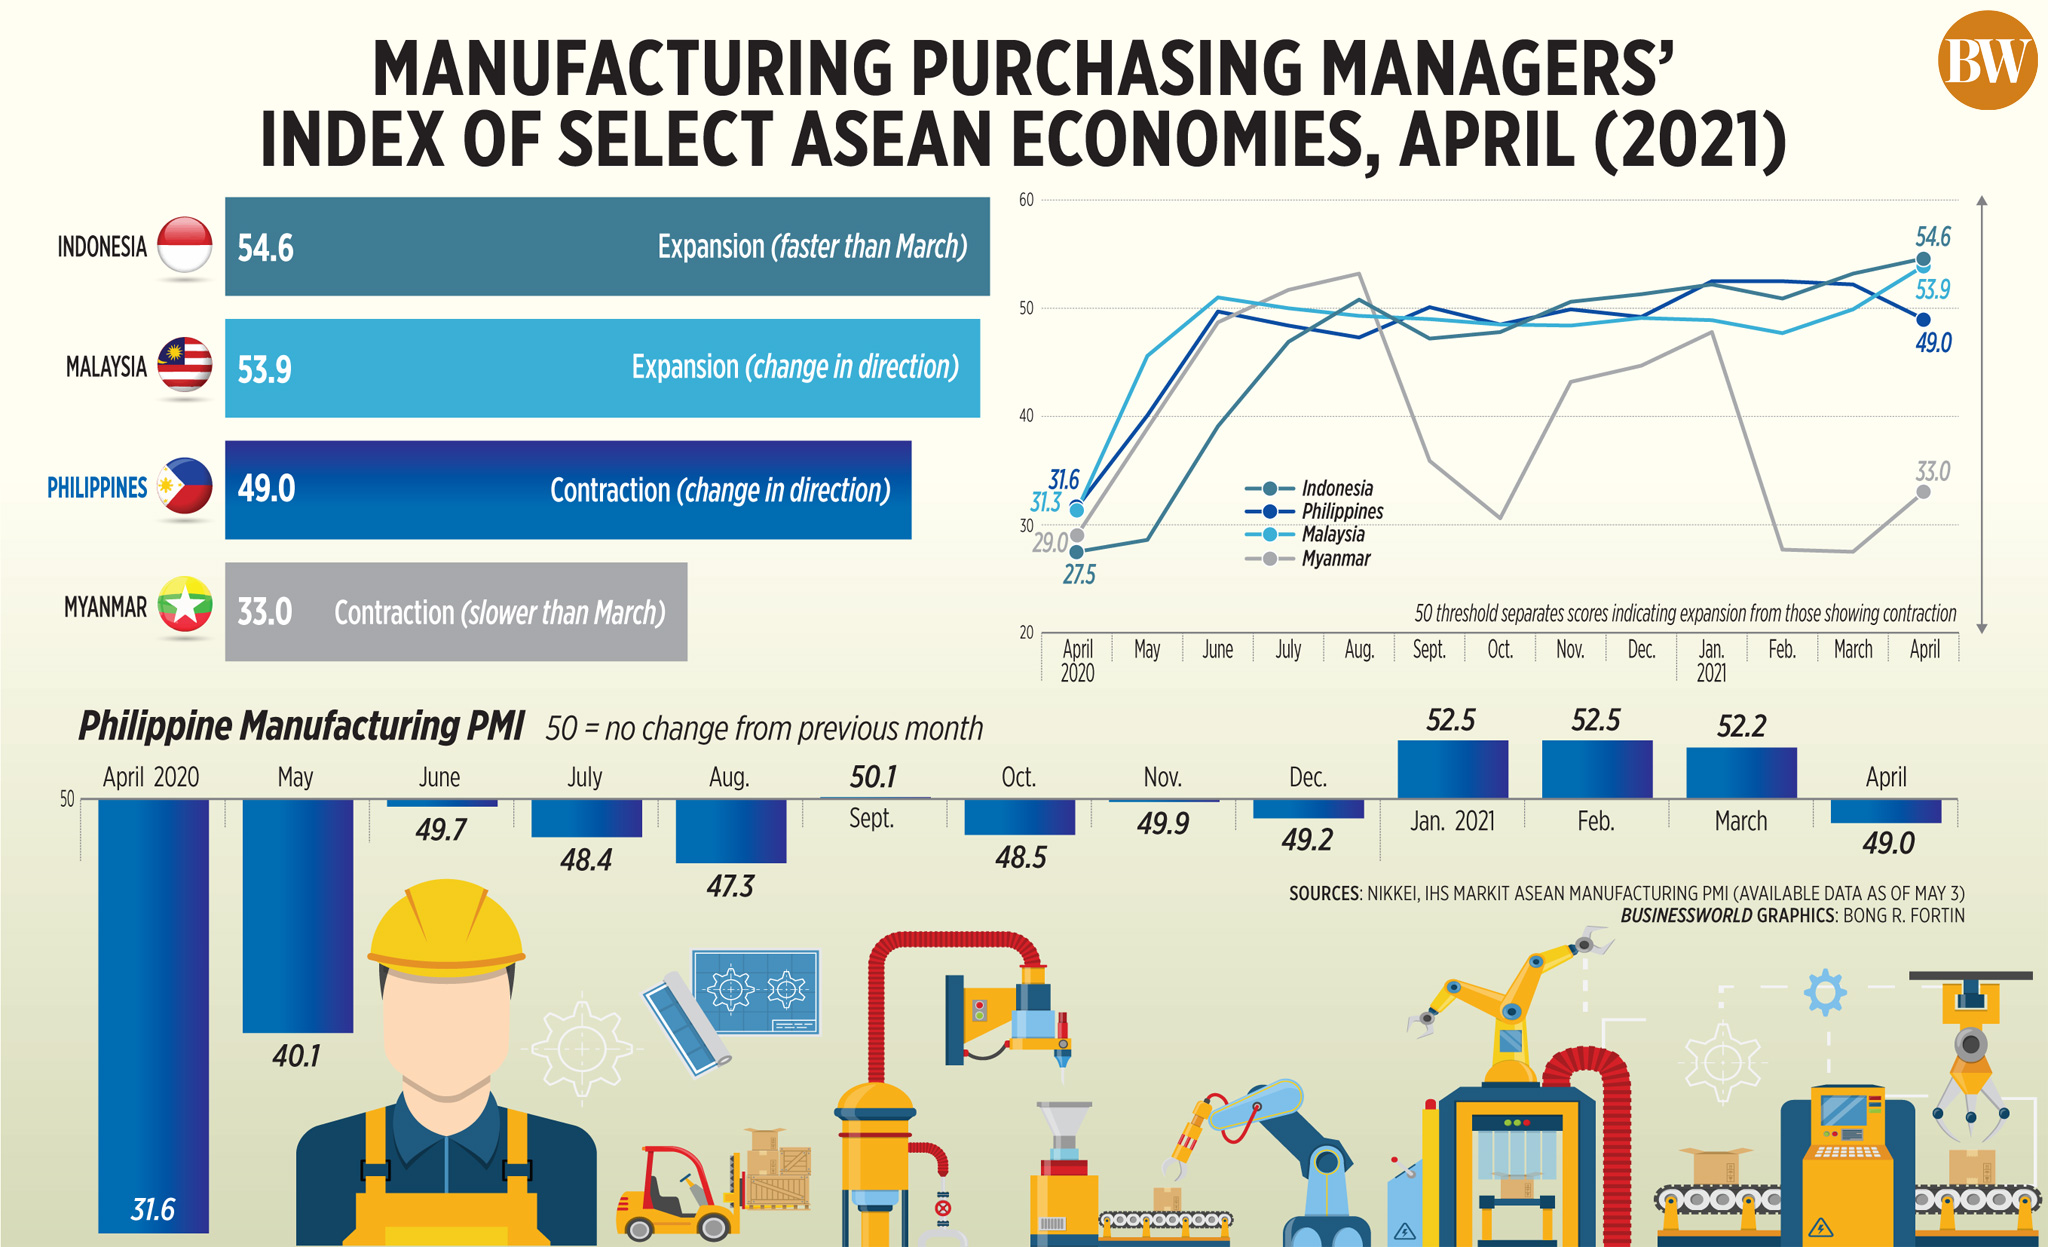 Manufacturing purchasing managers' index of select ASEAN economies, April (2021)